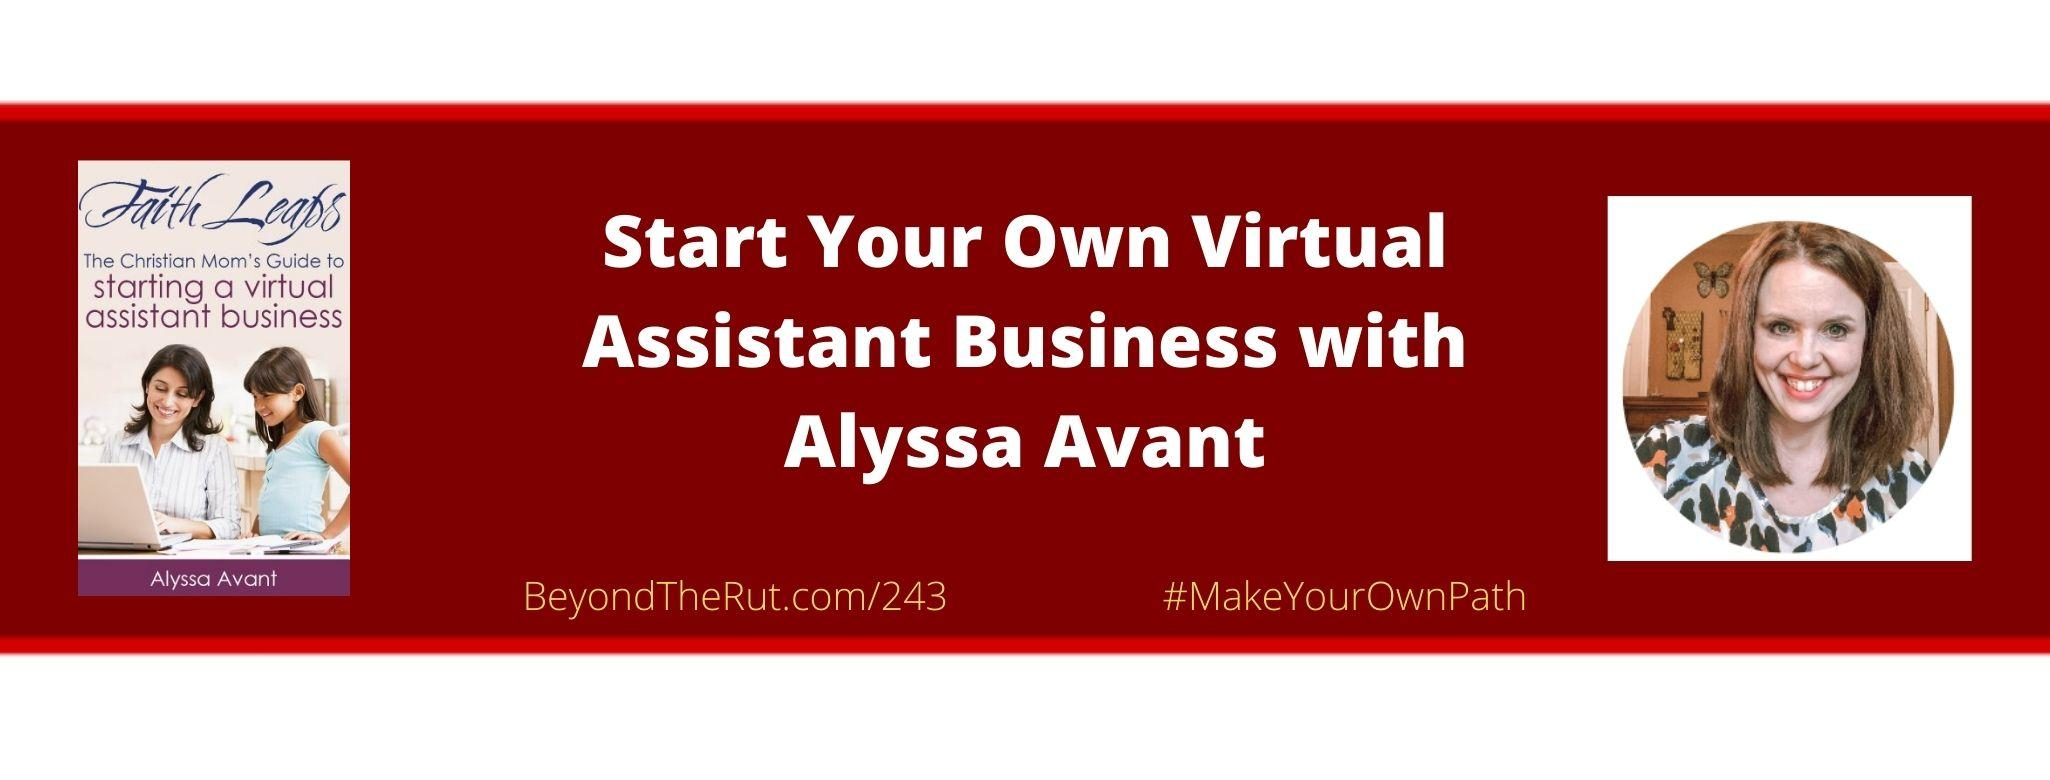 Start your own virtual assistant business with alyssa avant